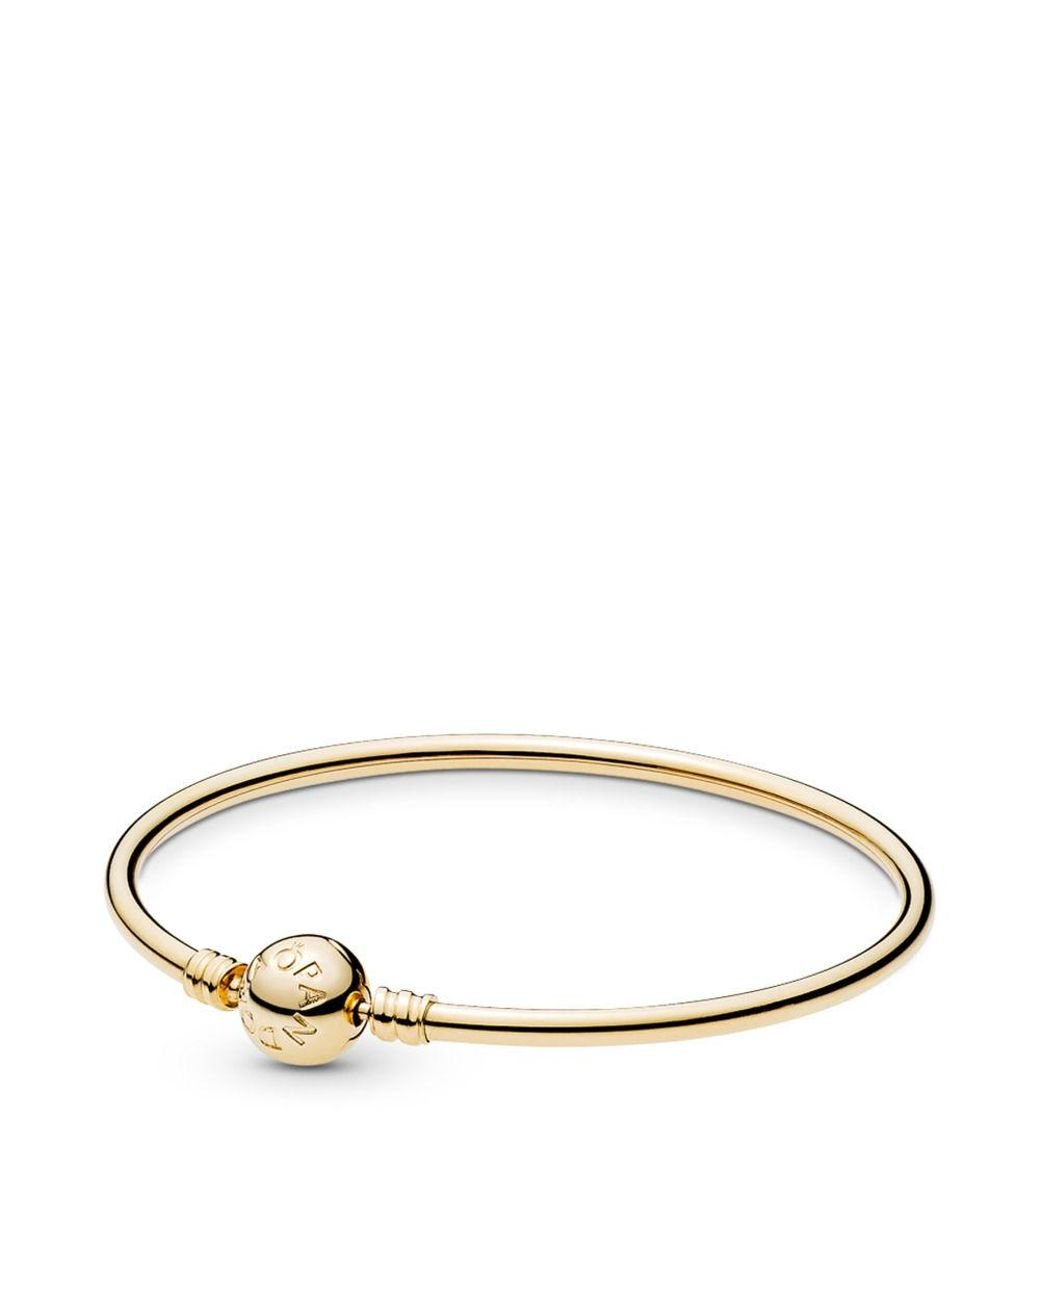 6a07eaaa8 PANDORA 14k Gold Bangle With Signature Clasp in Metallic - Save 6% - Lyst